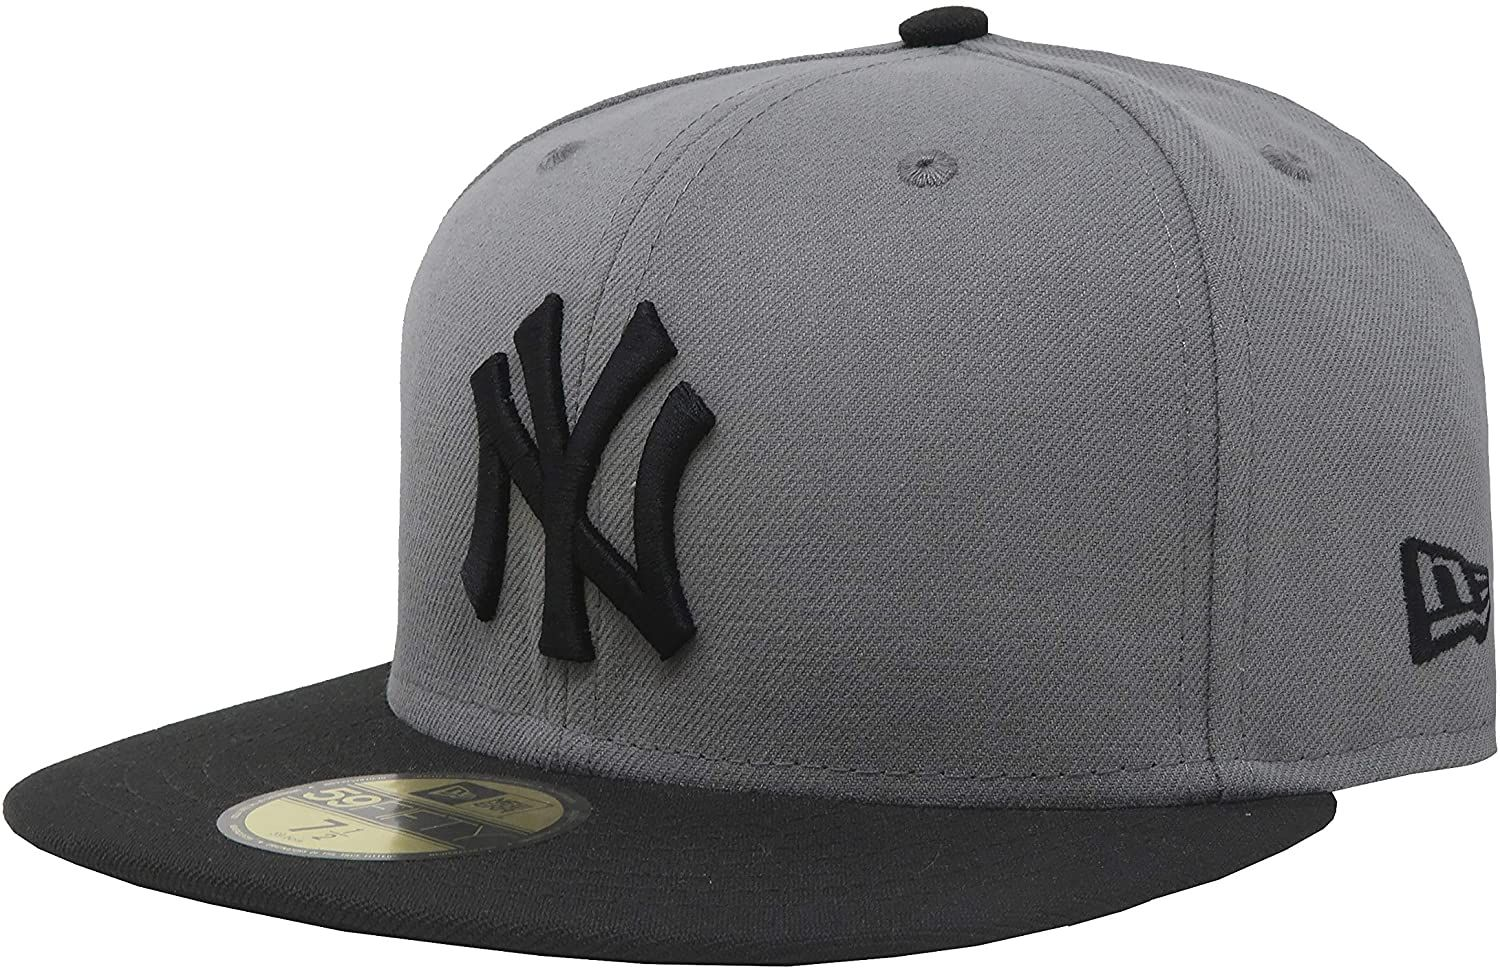 New Era 59fifty Hat New York Yankees Mlb Basic Storm Gray Black Fitted Cap In 2020 New Era 59fifty 59fifty Hats New Era